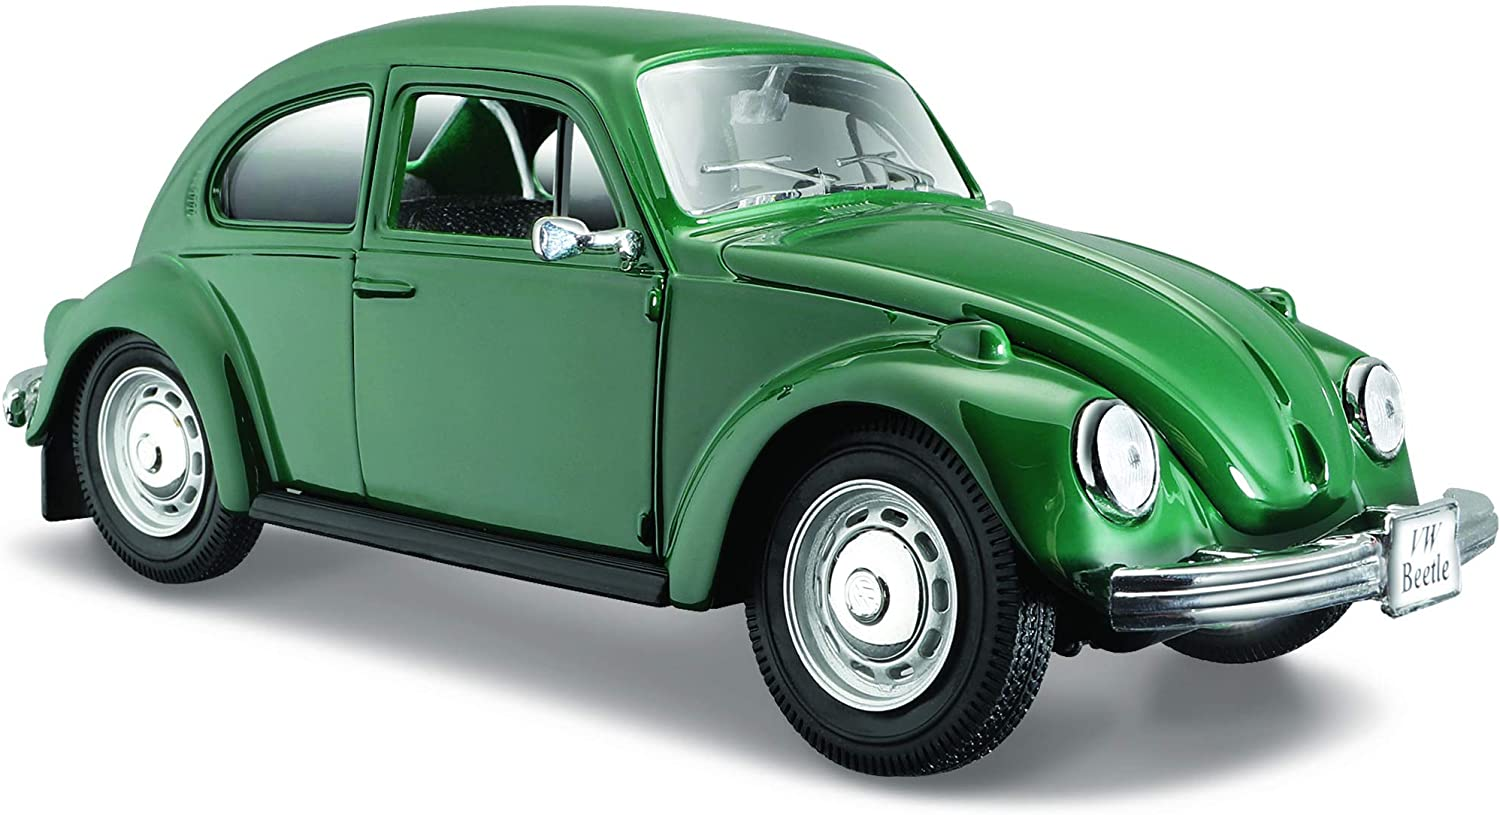 MS VOLKSWAGEN BEETLE 1.24 GREEN - Wild Willy - Toys Lebanon